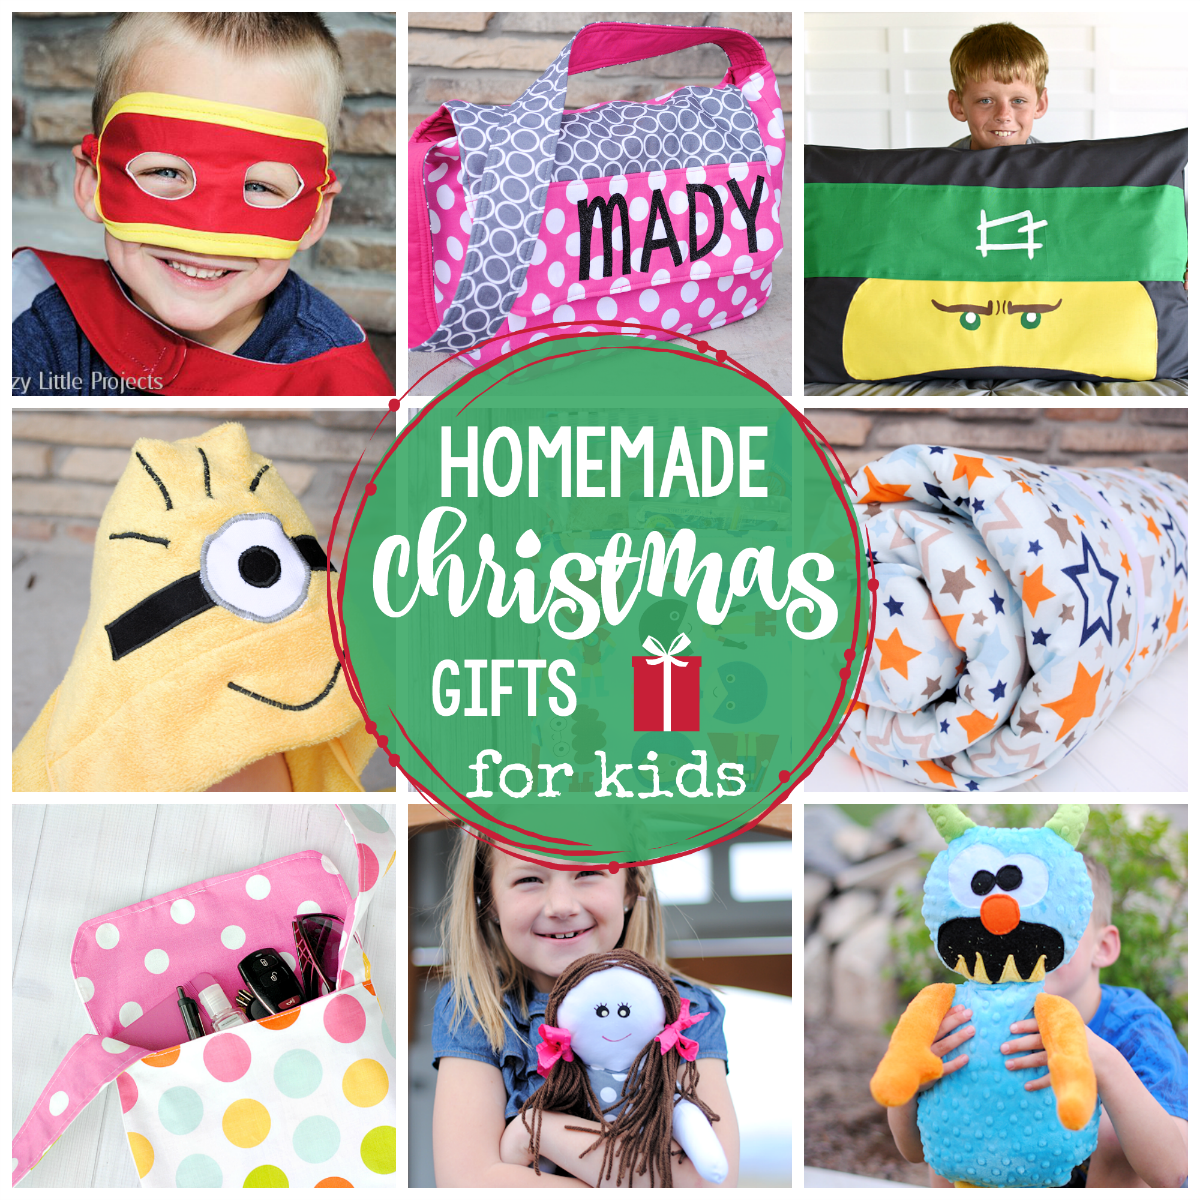 25 Homemade Christmas Gifts for Kids - Crazy Little Projects e9272deff2534